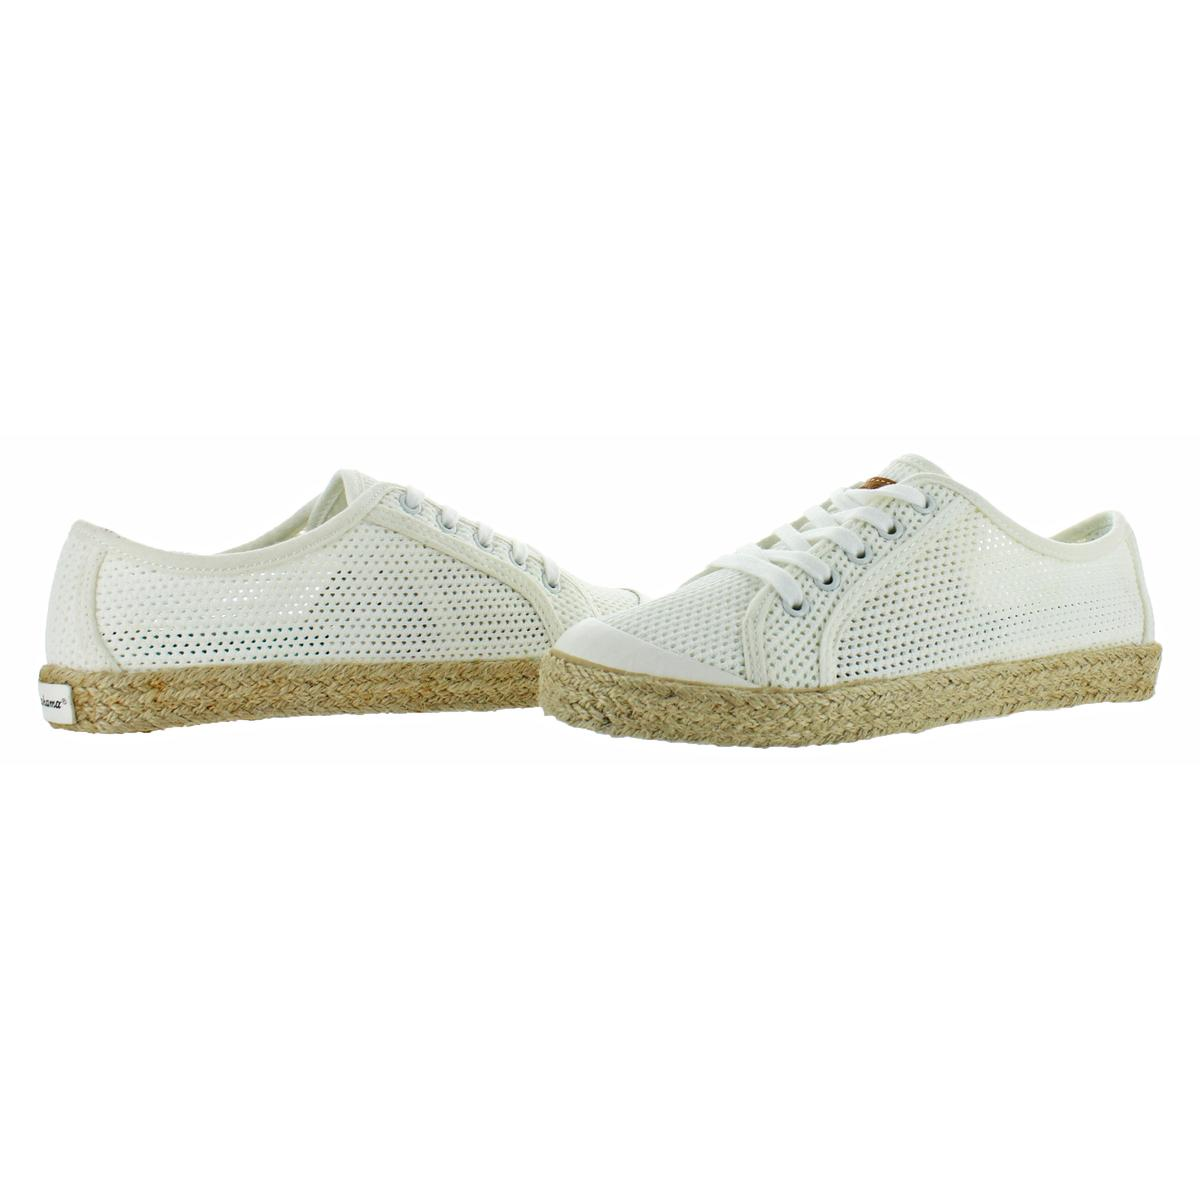 Tommy-Bahama-Women-039-s-Ettana-Low-Top-Lace-Up-Fashion-Sneakers-Shoes thumbnail 3